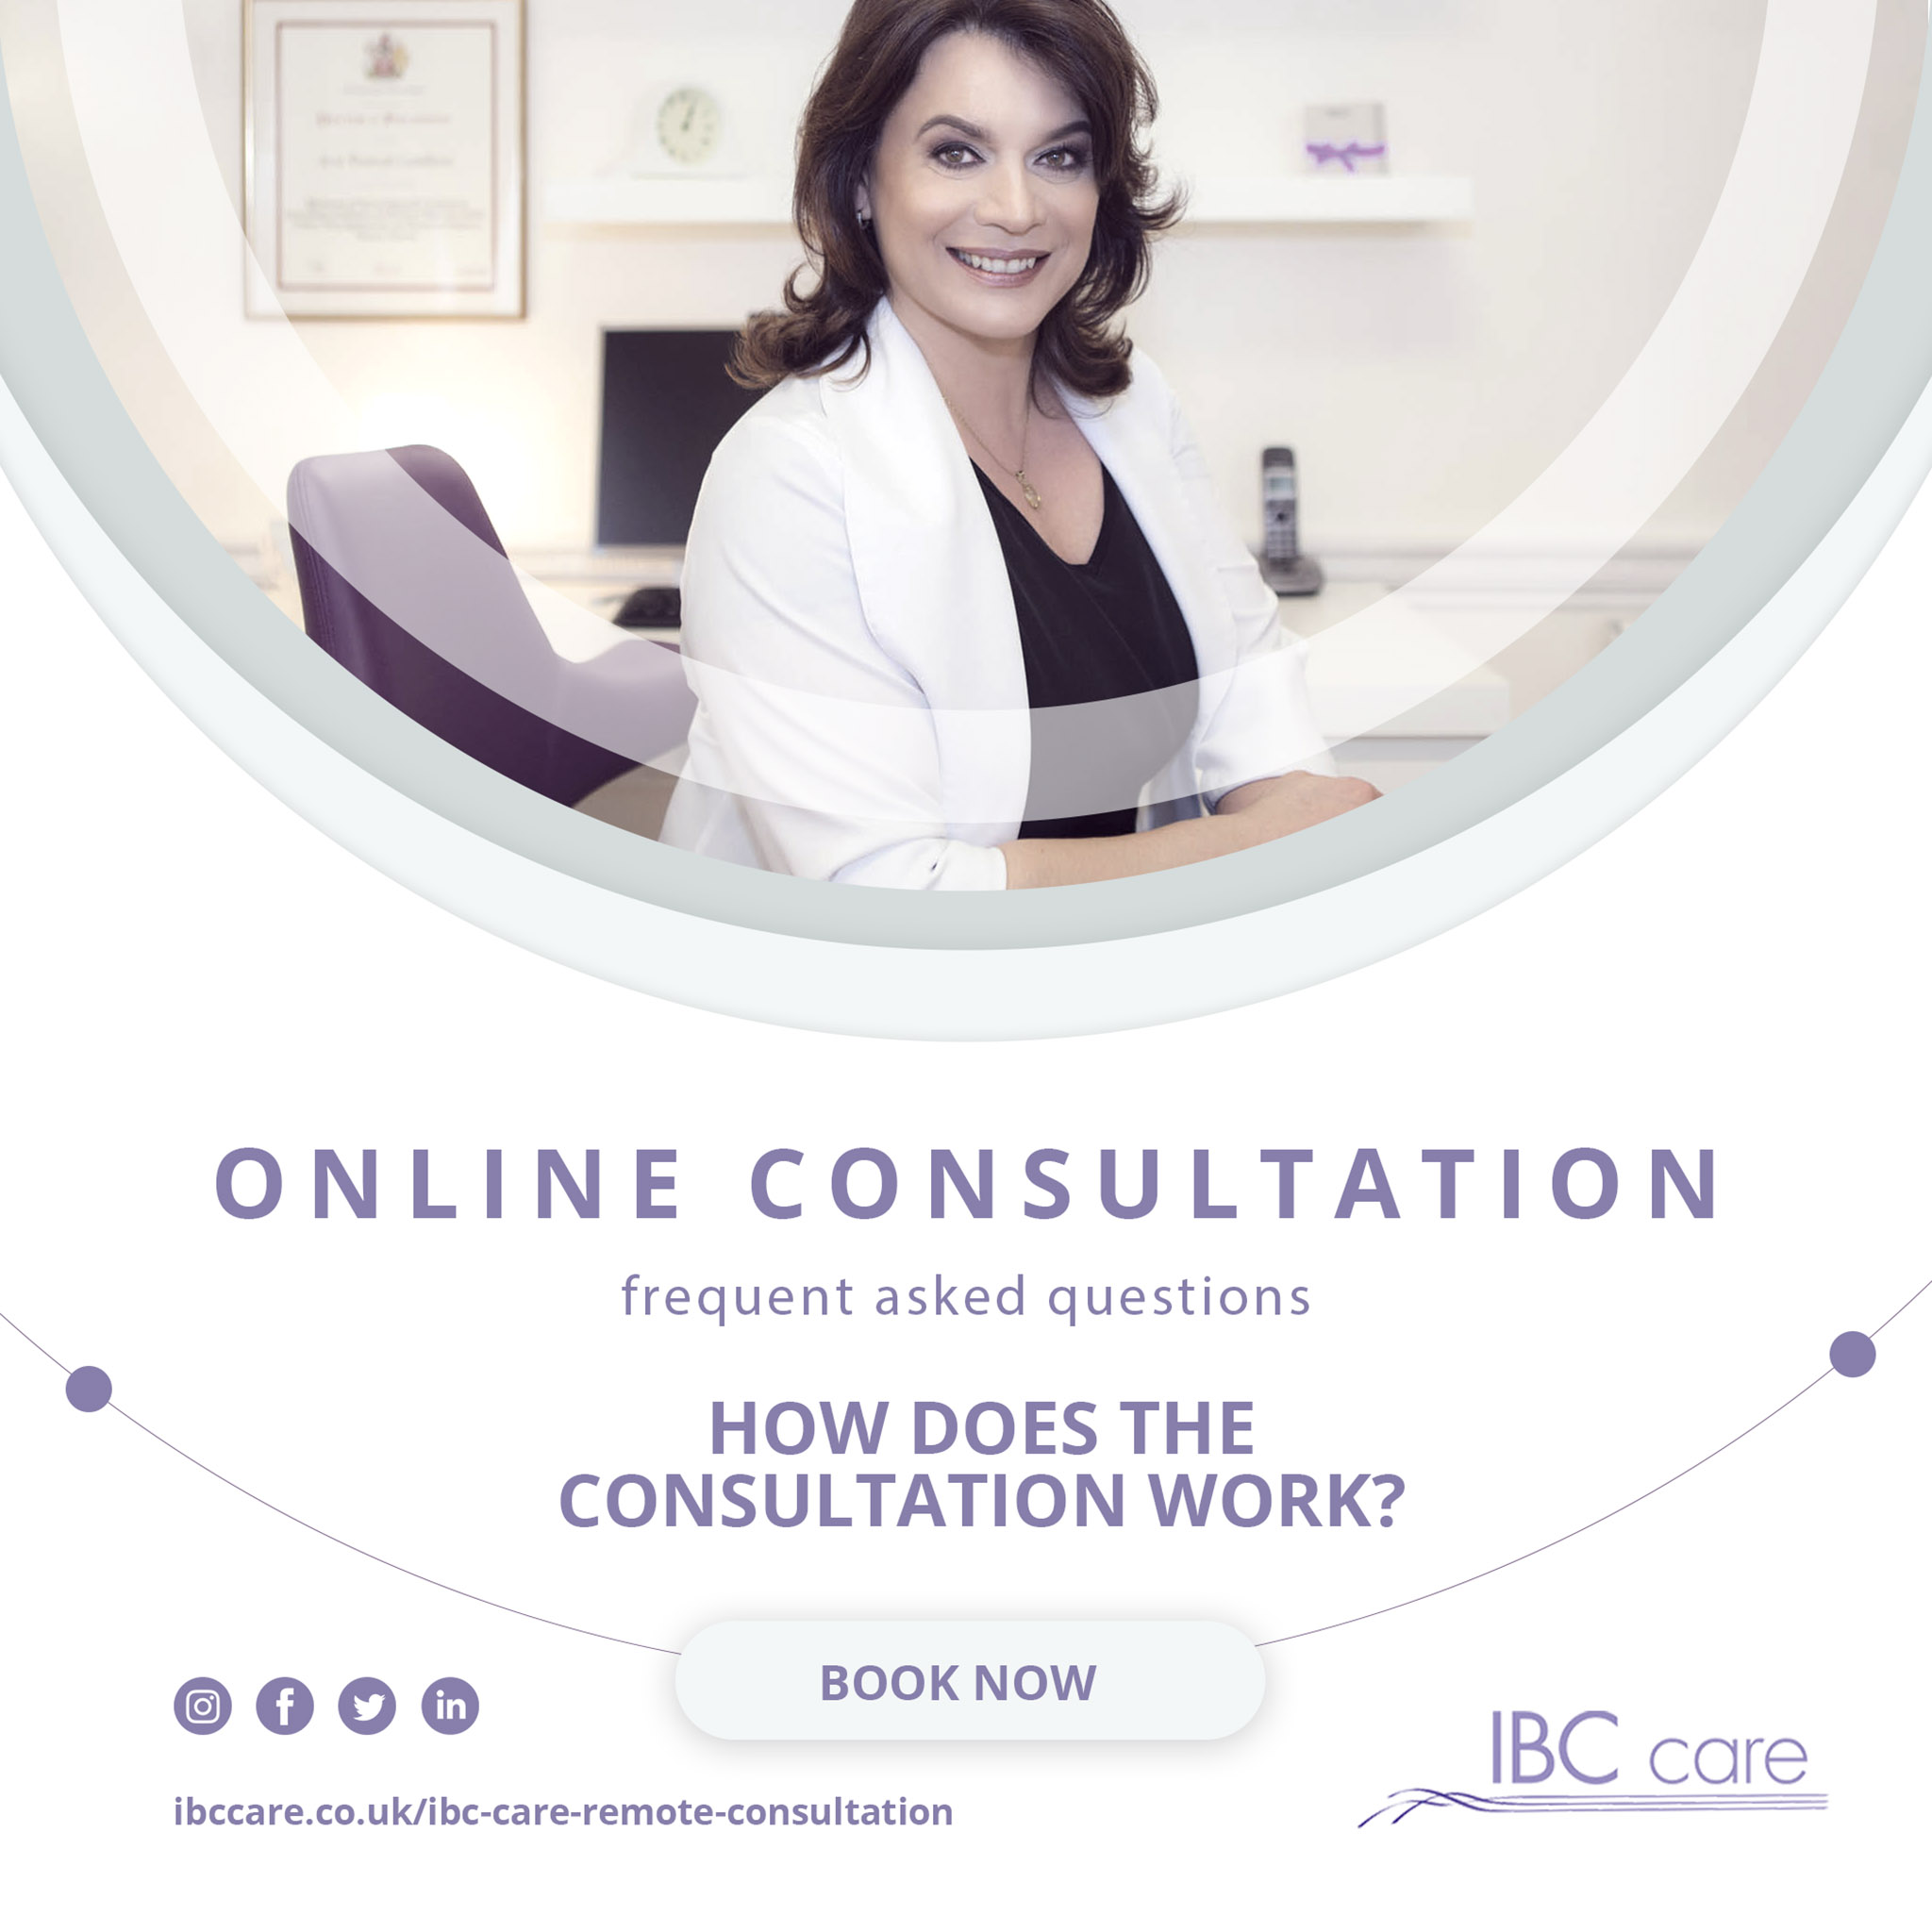 FAQ: How does the Online Consultation work?